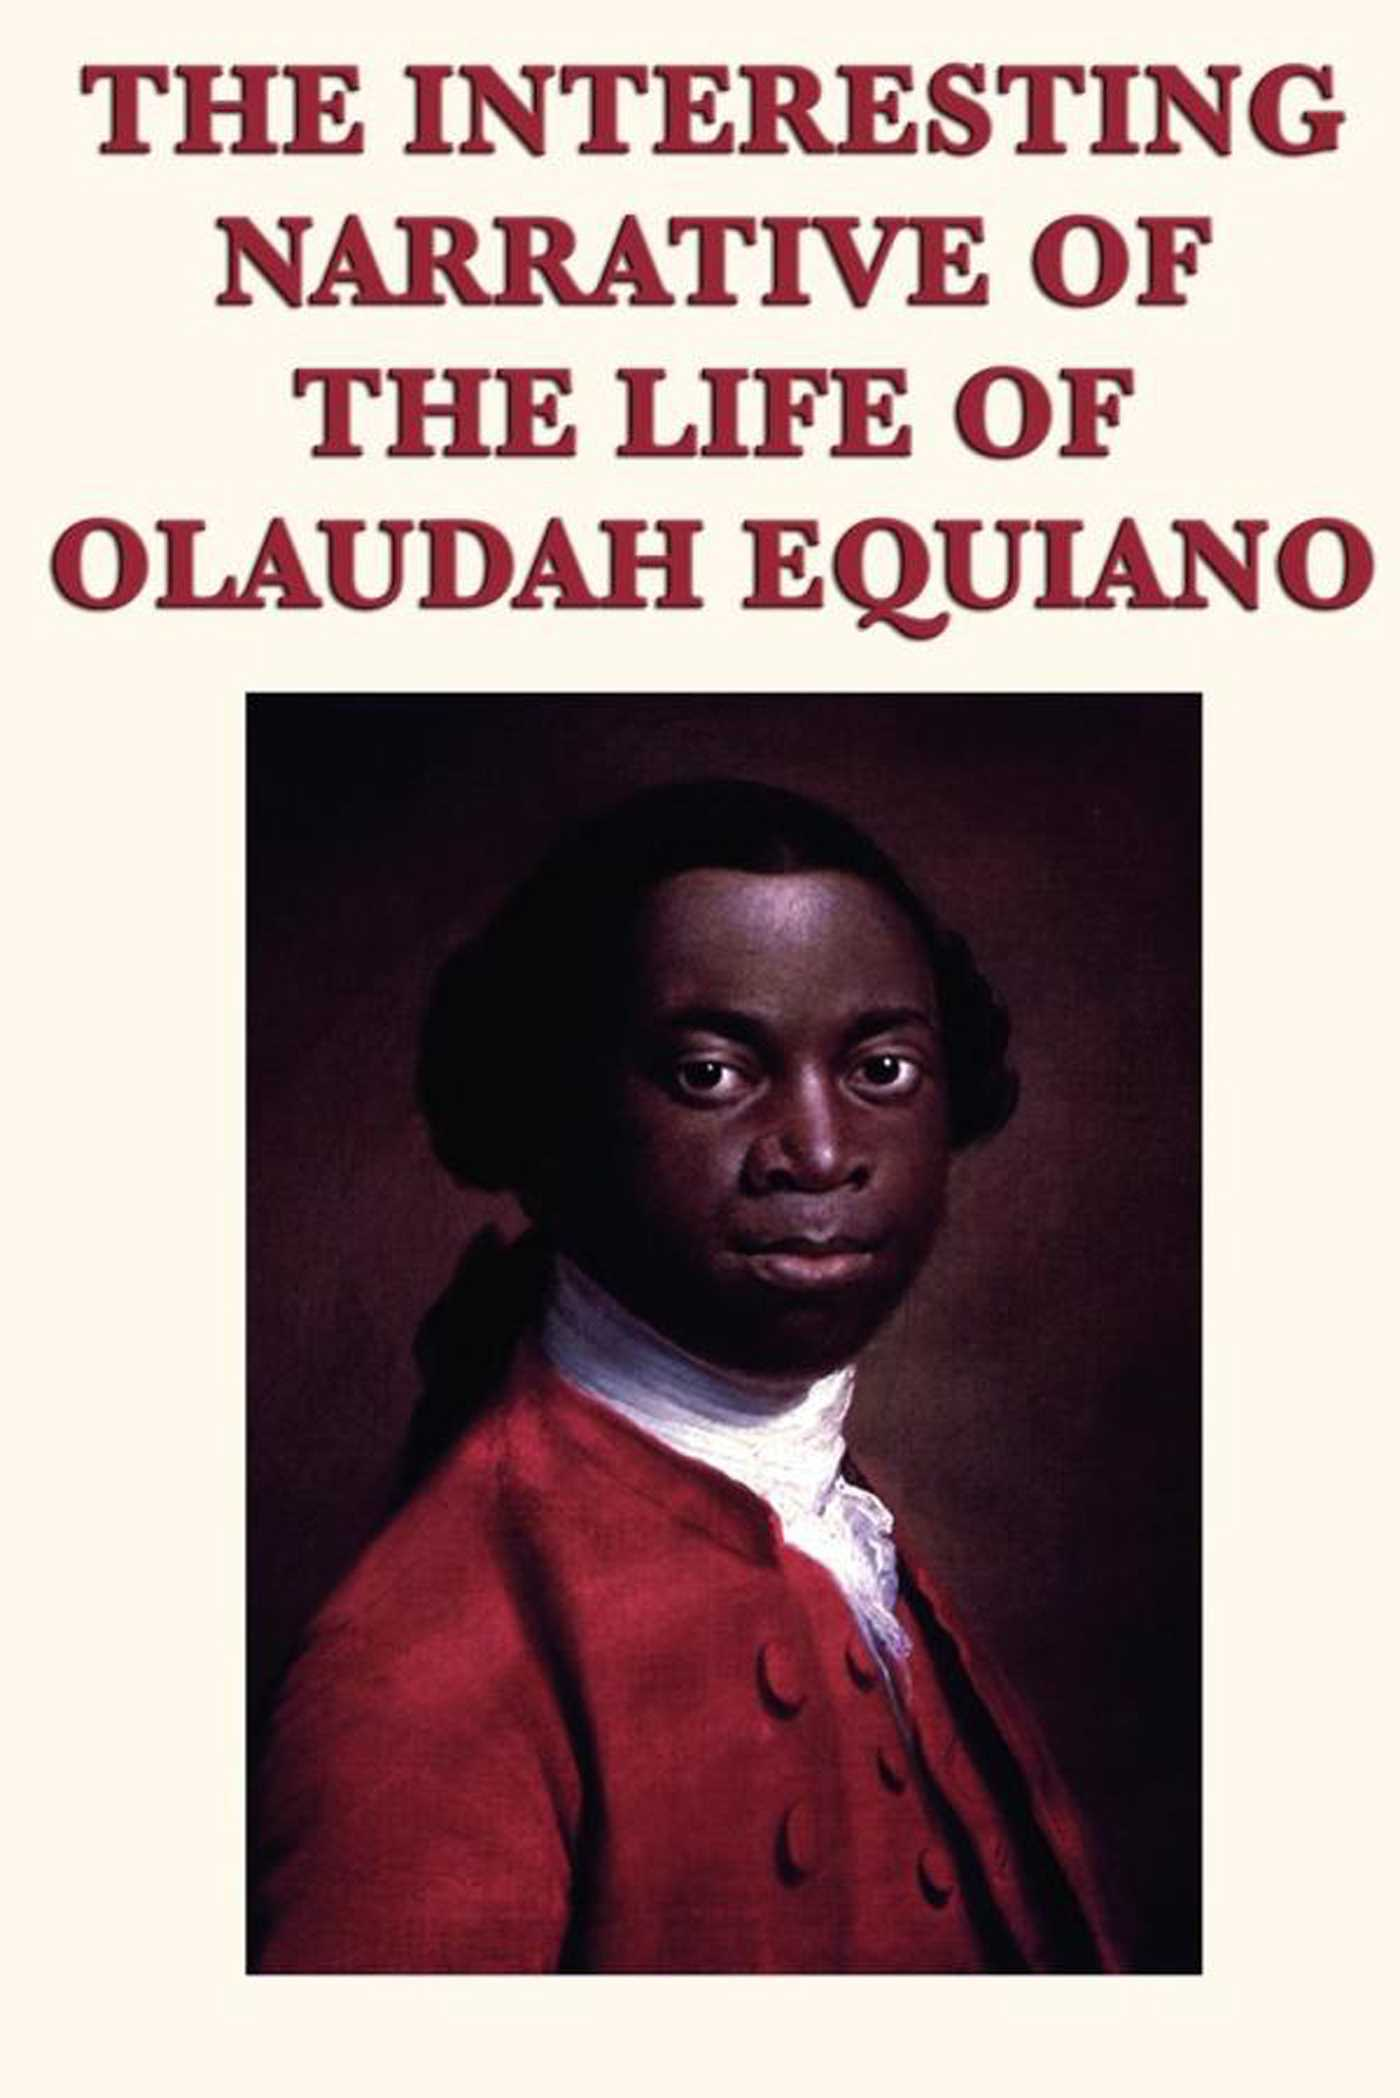 interesting narrative olaudah equiano essay